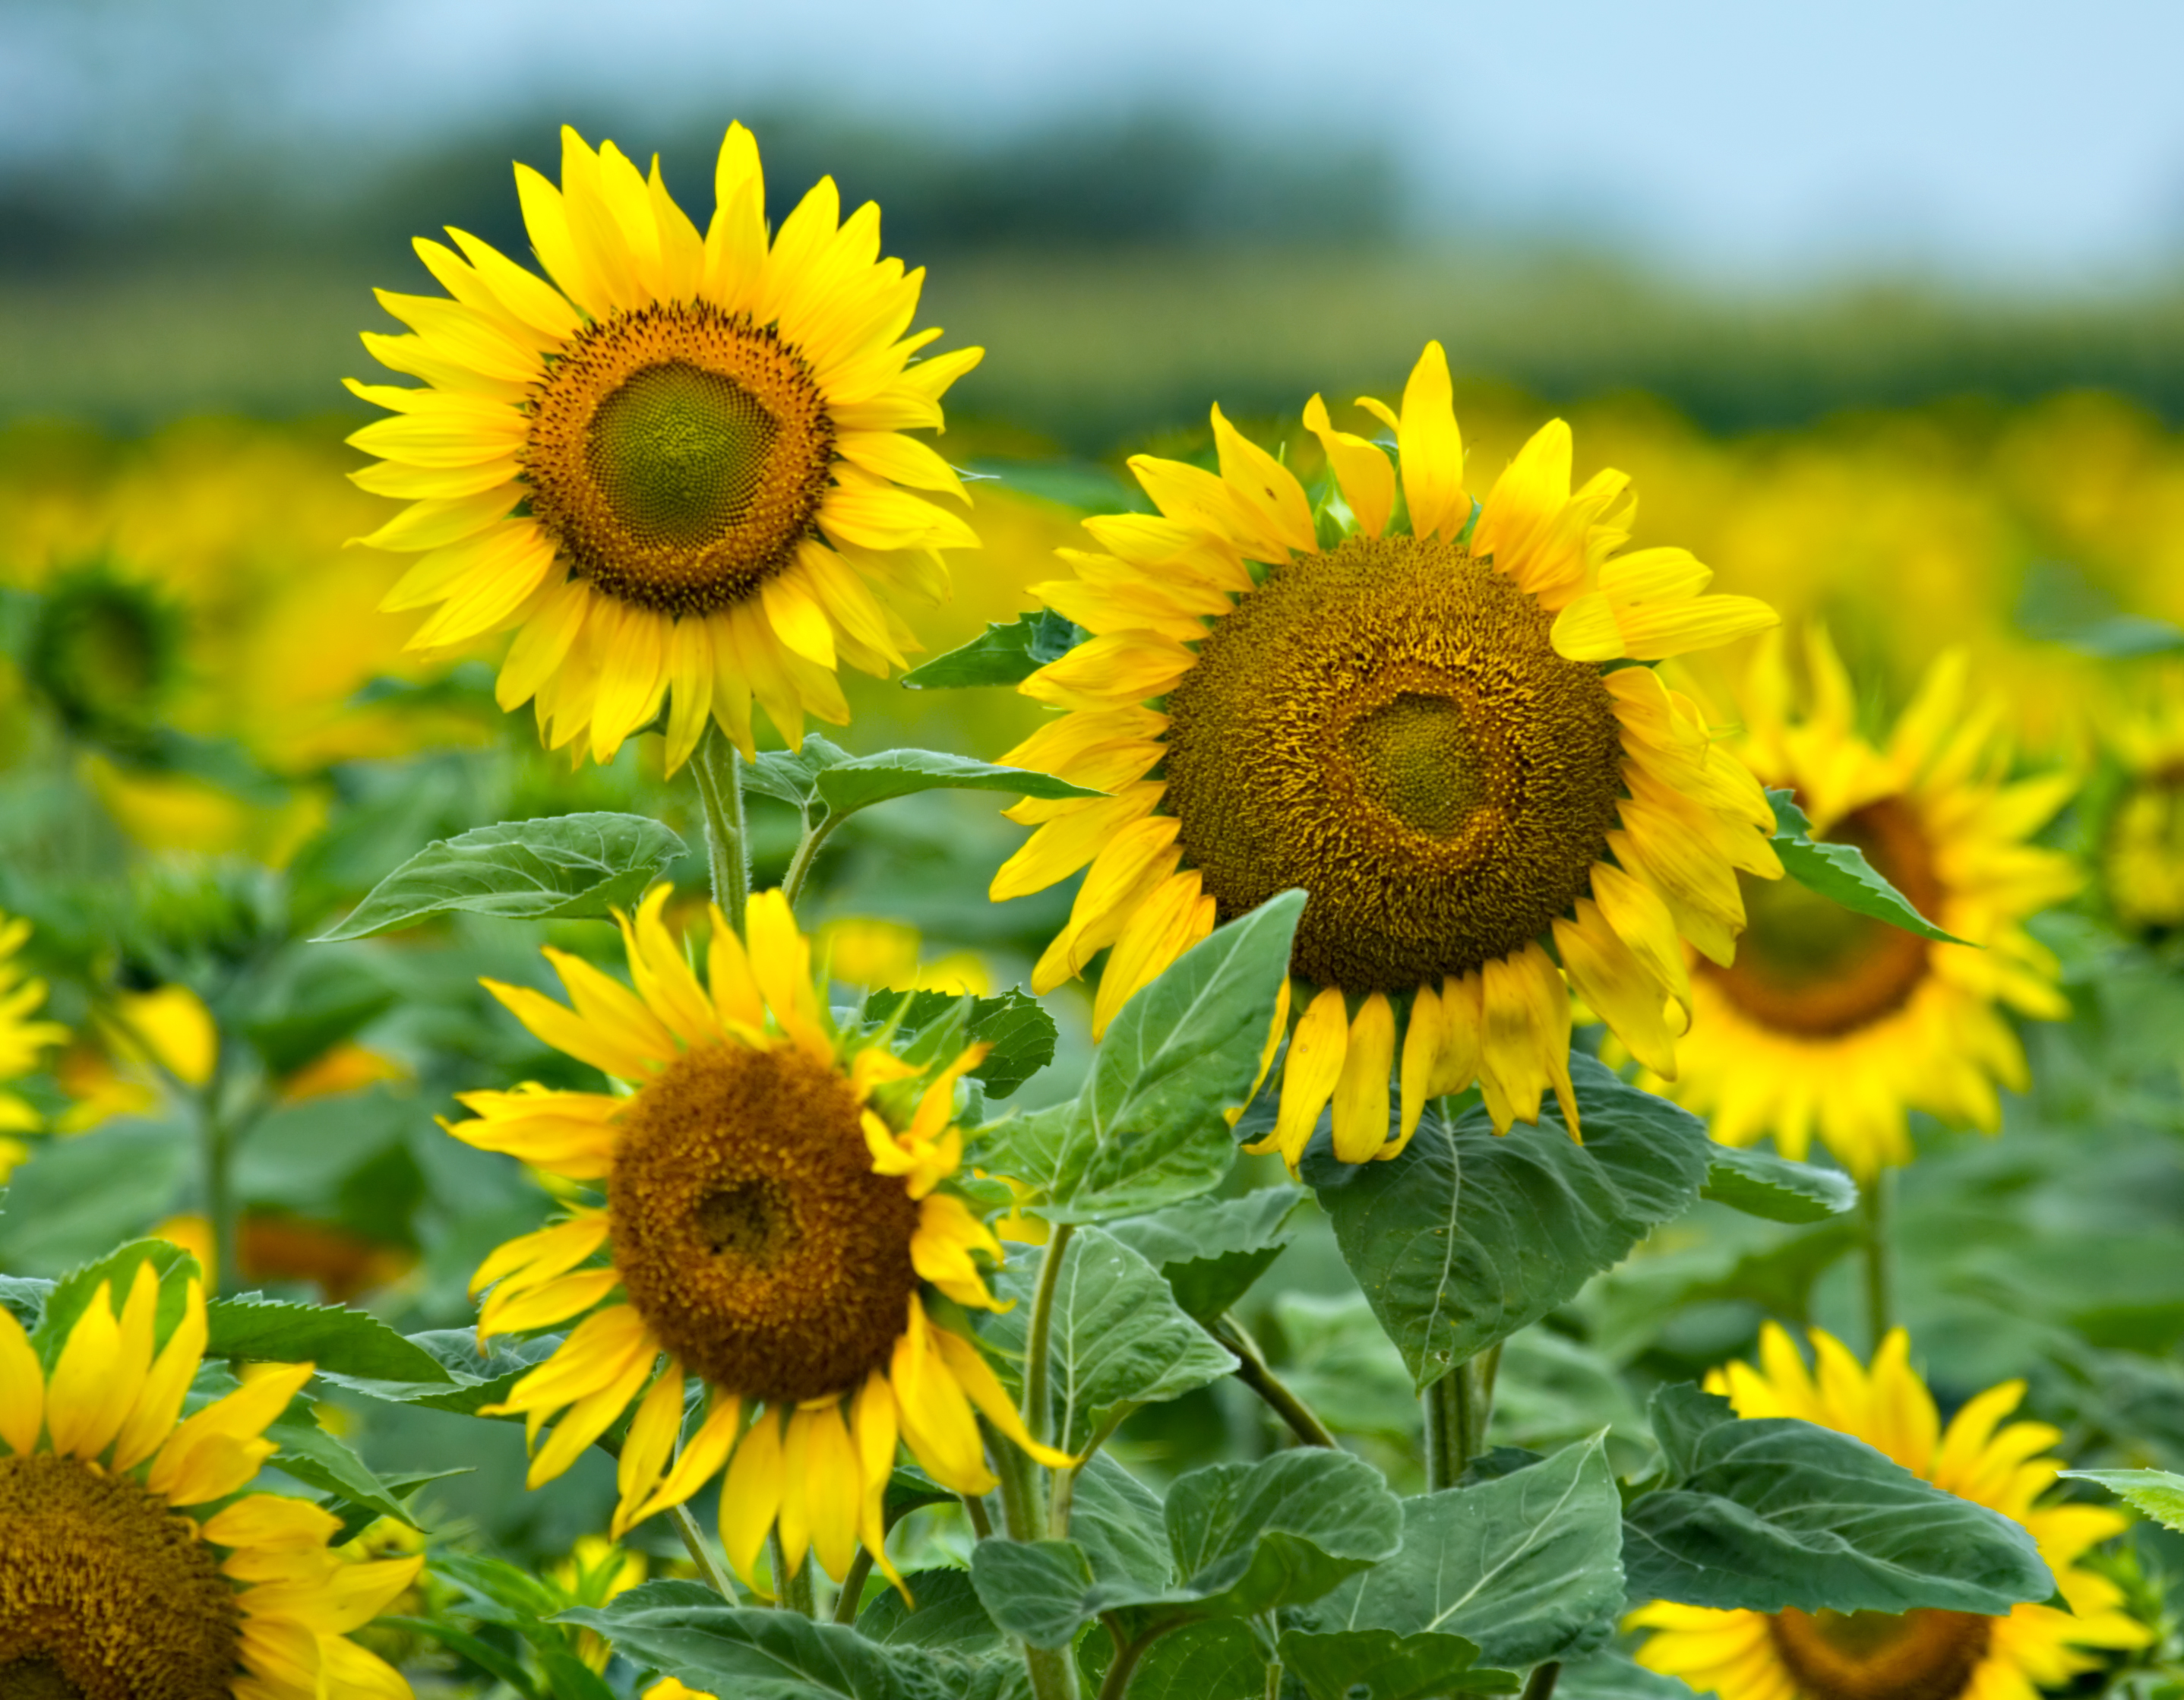 Sunflowers – What about God